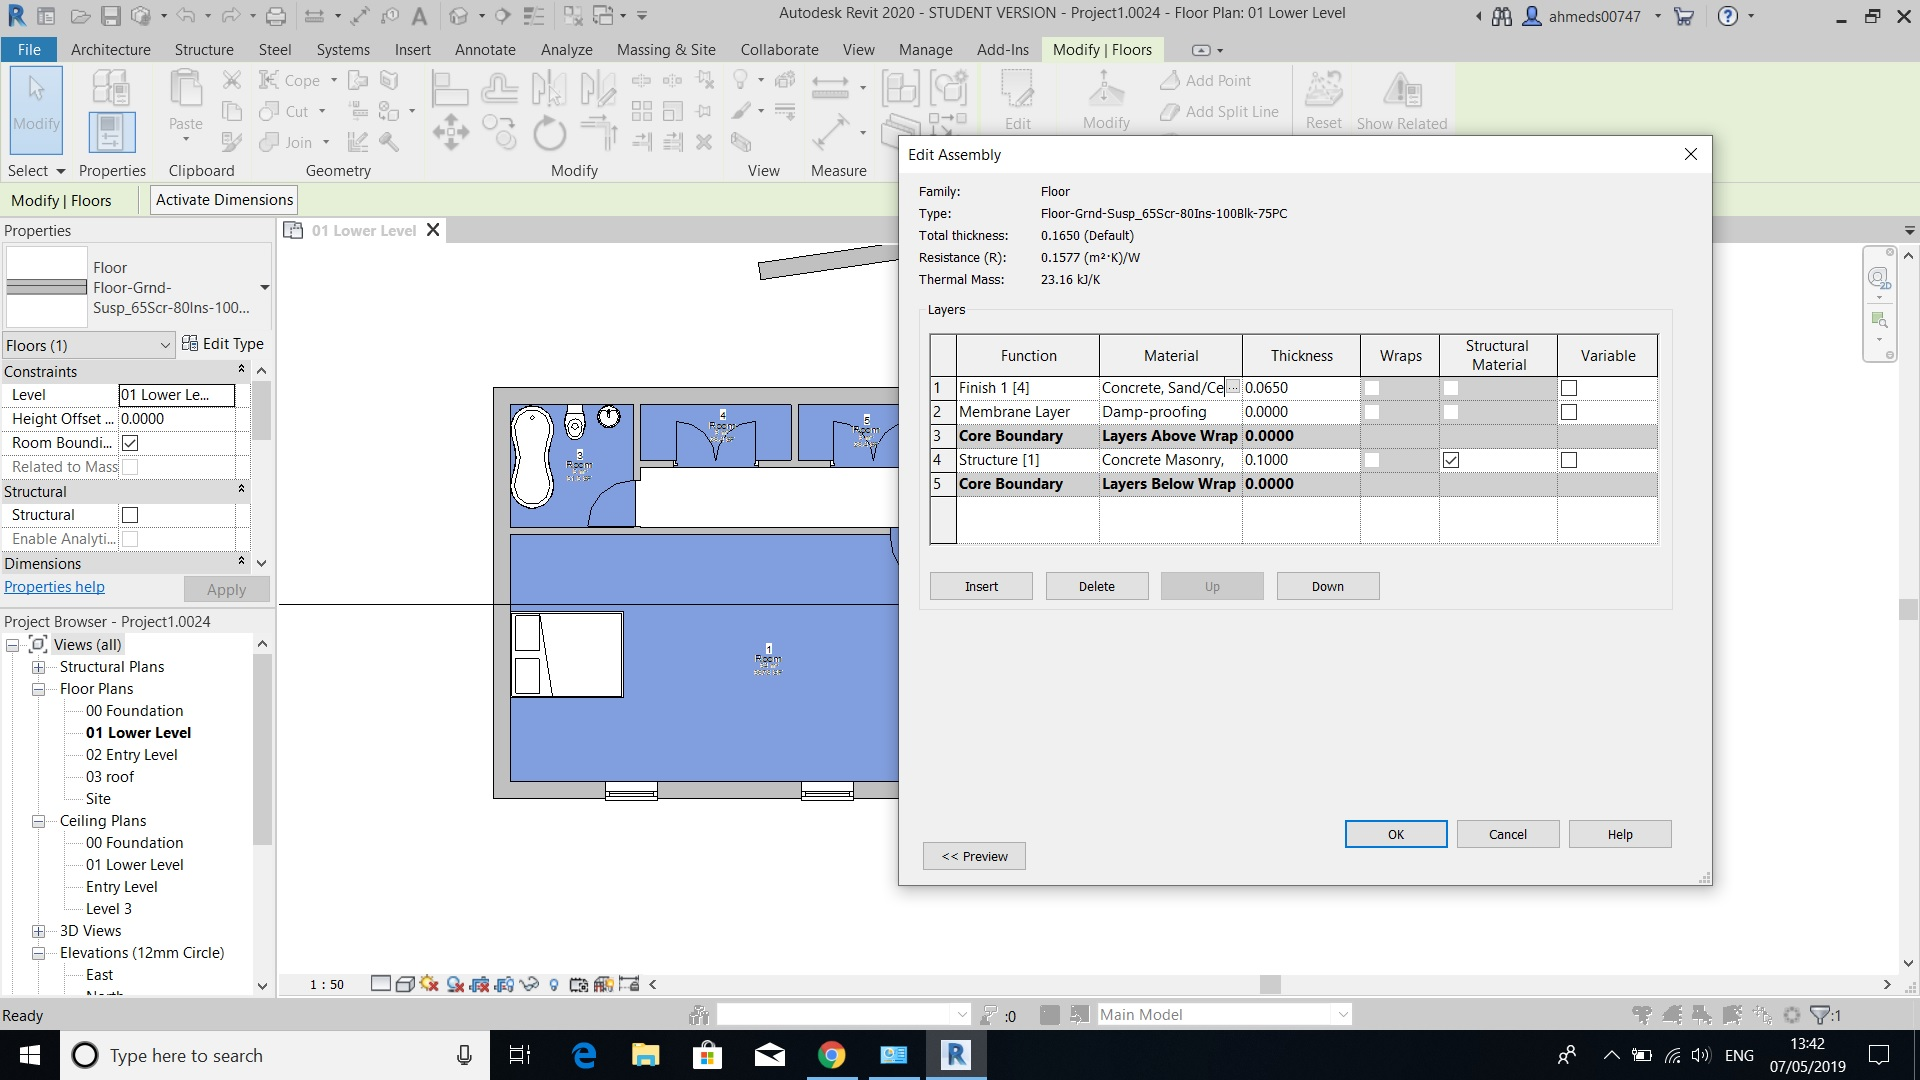 Revit 2020 and 2019 Material Library not showing up